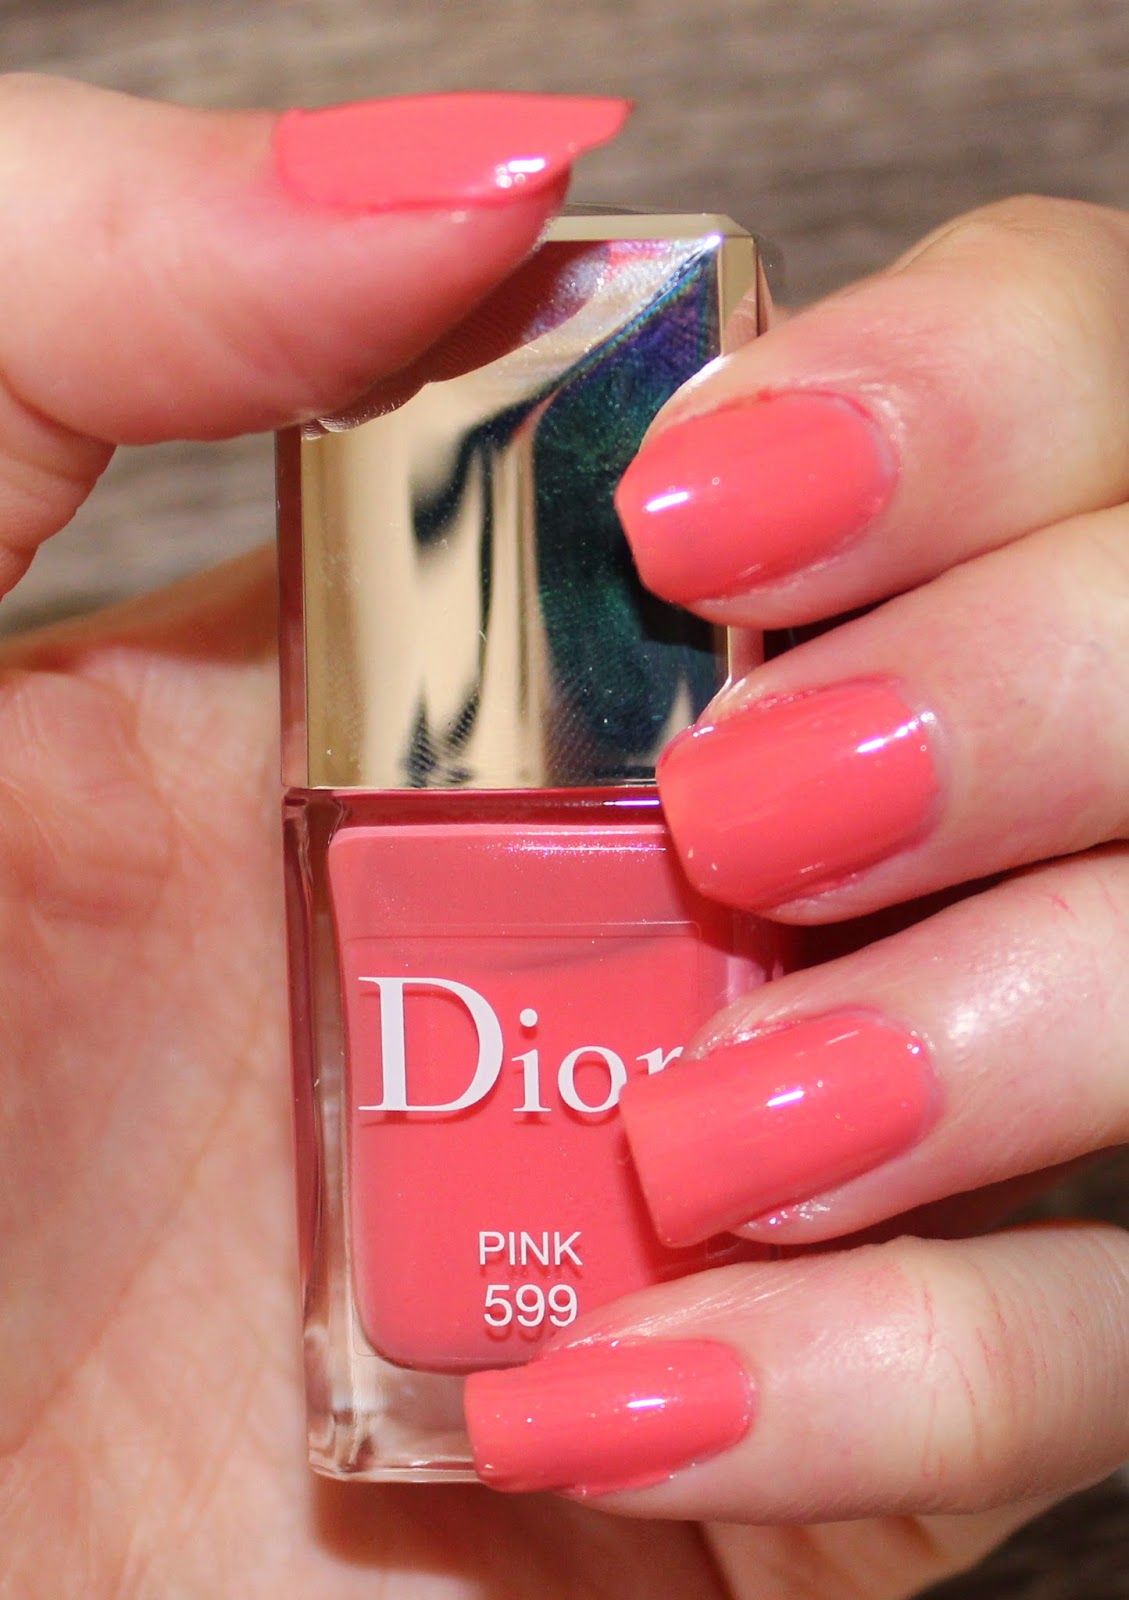 Dior Vernis in Pink